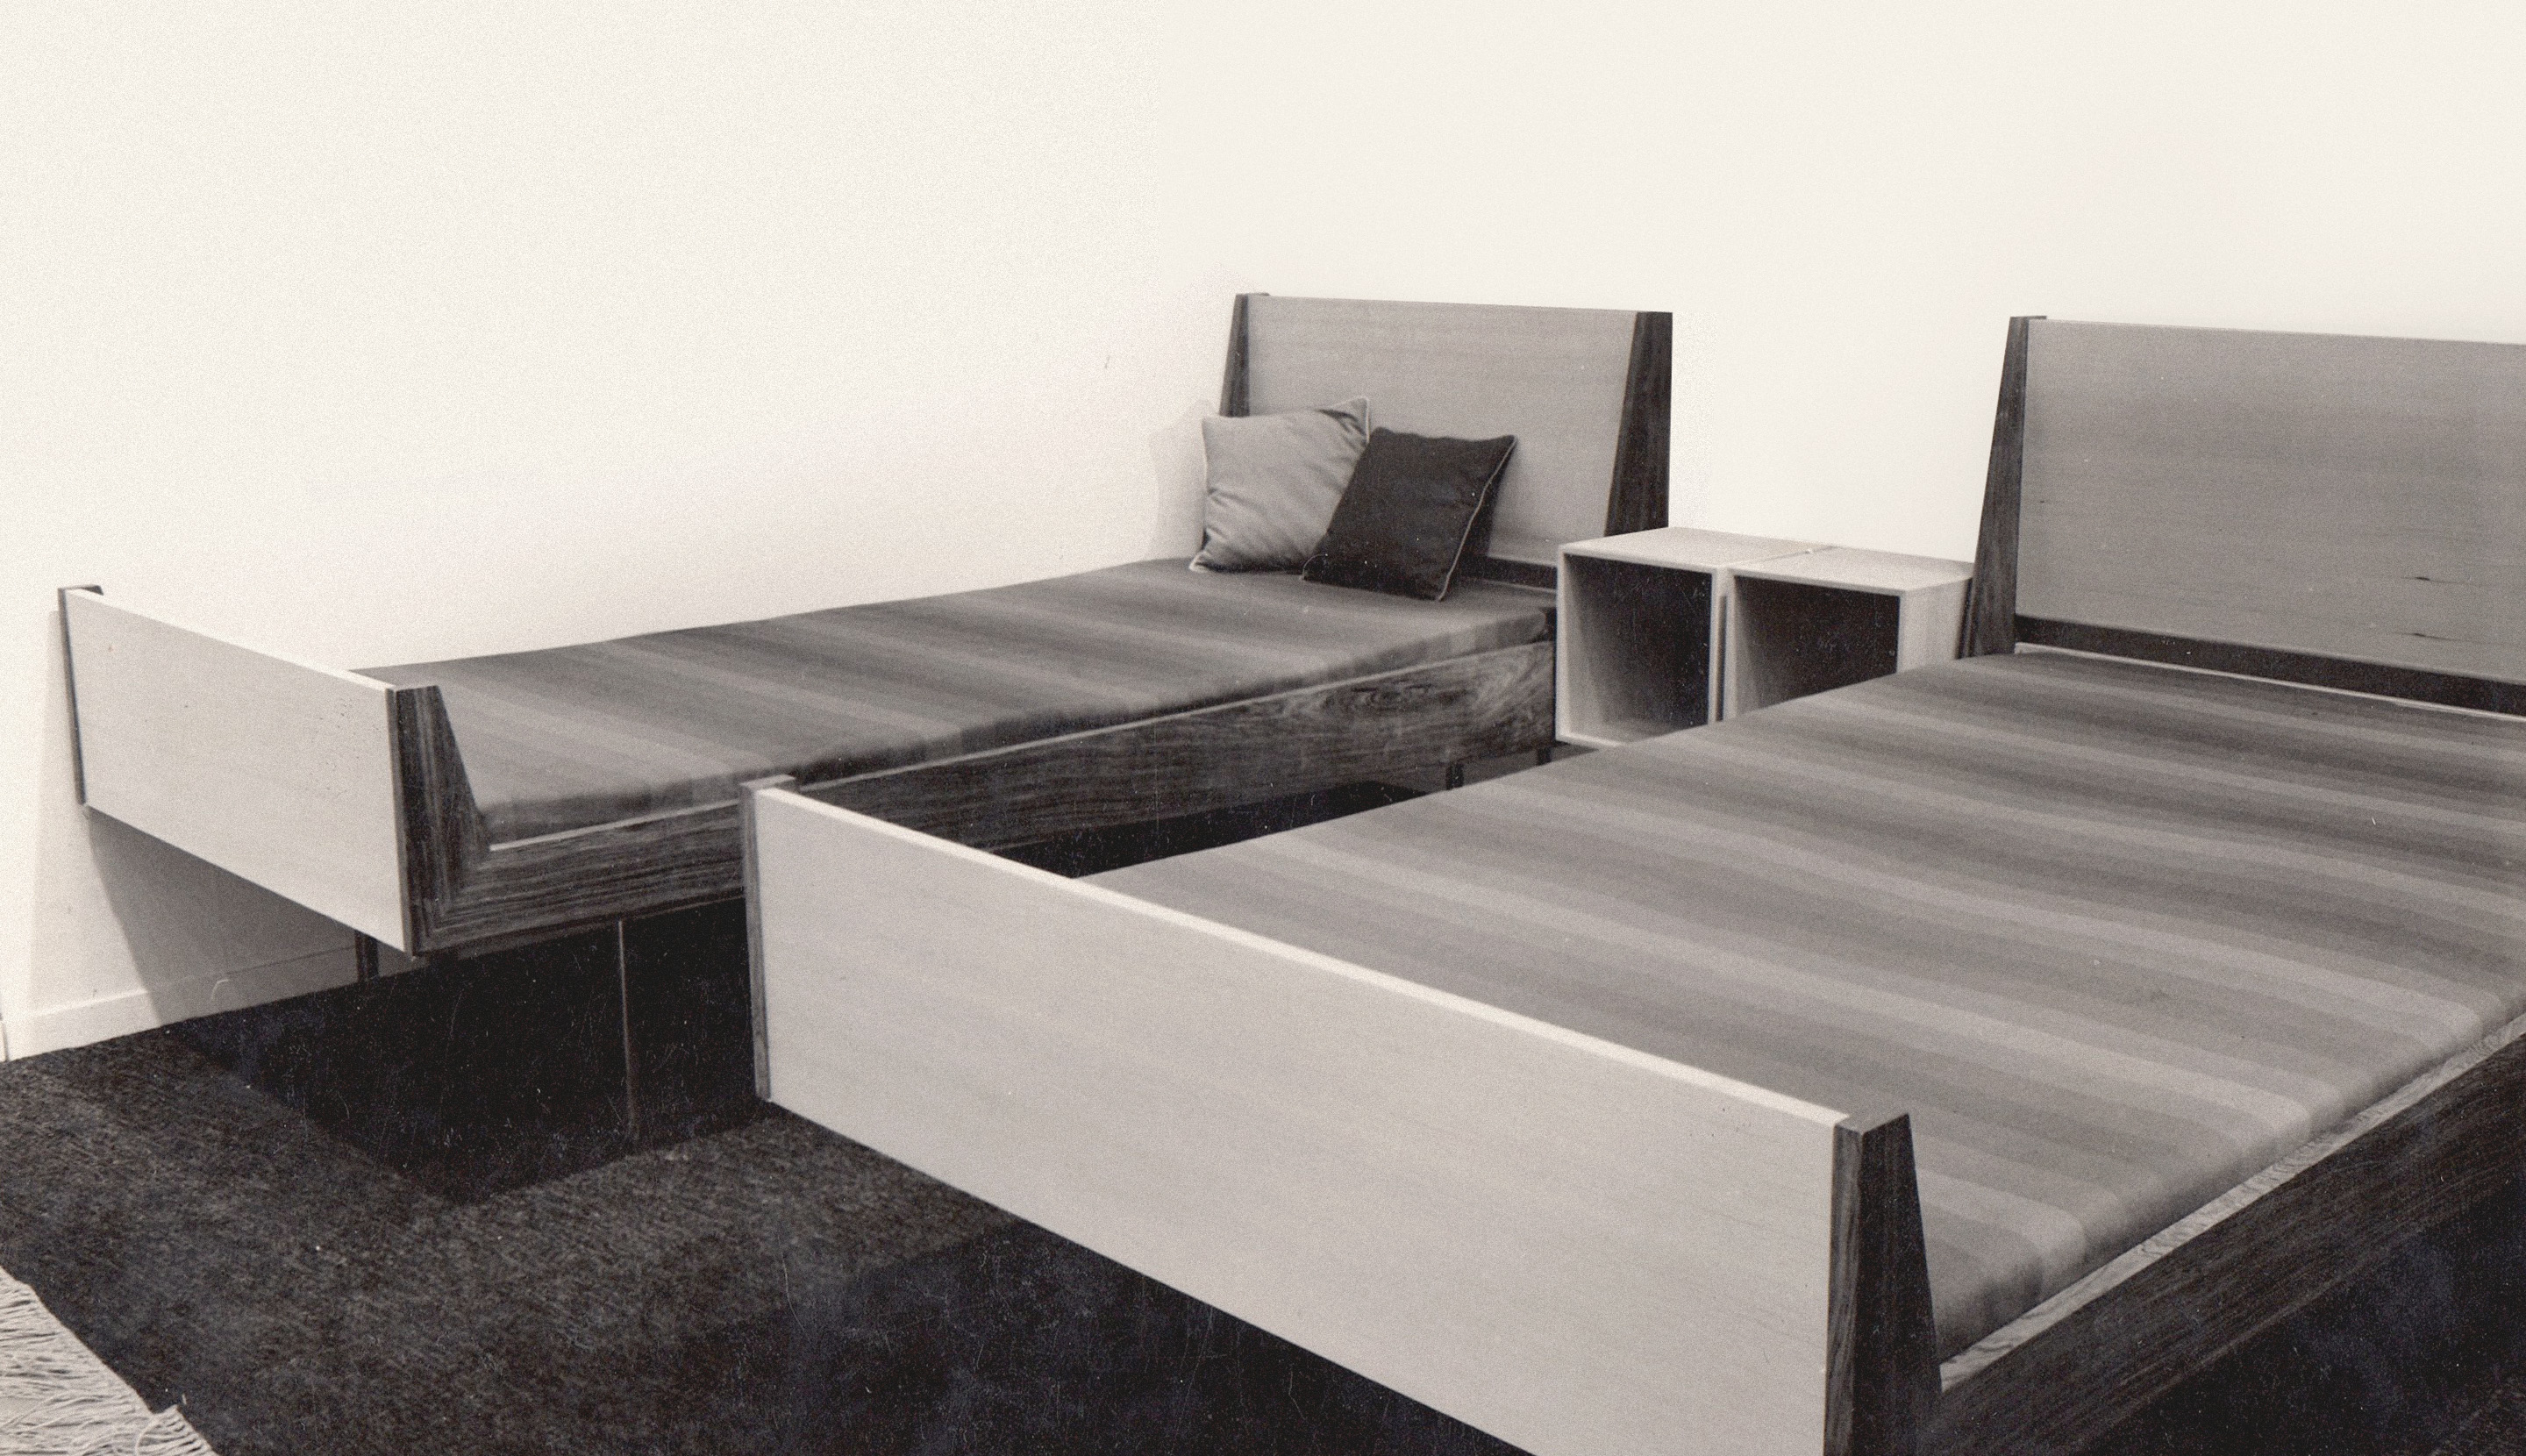 Beds with adjustable headboards